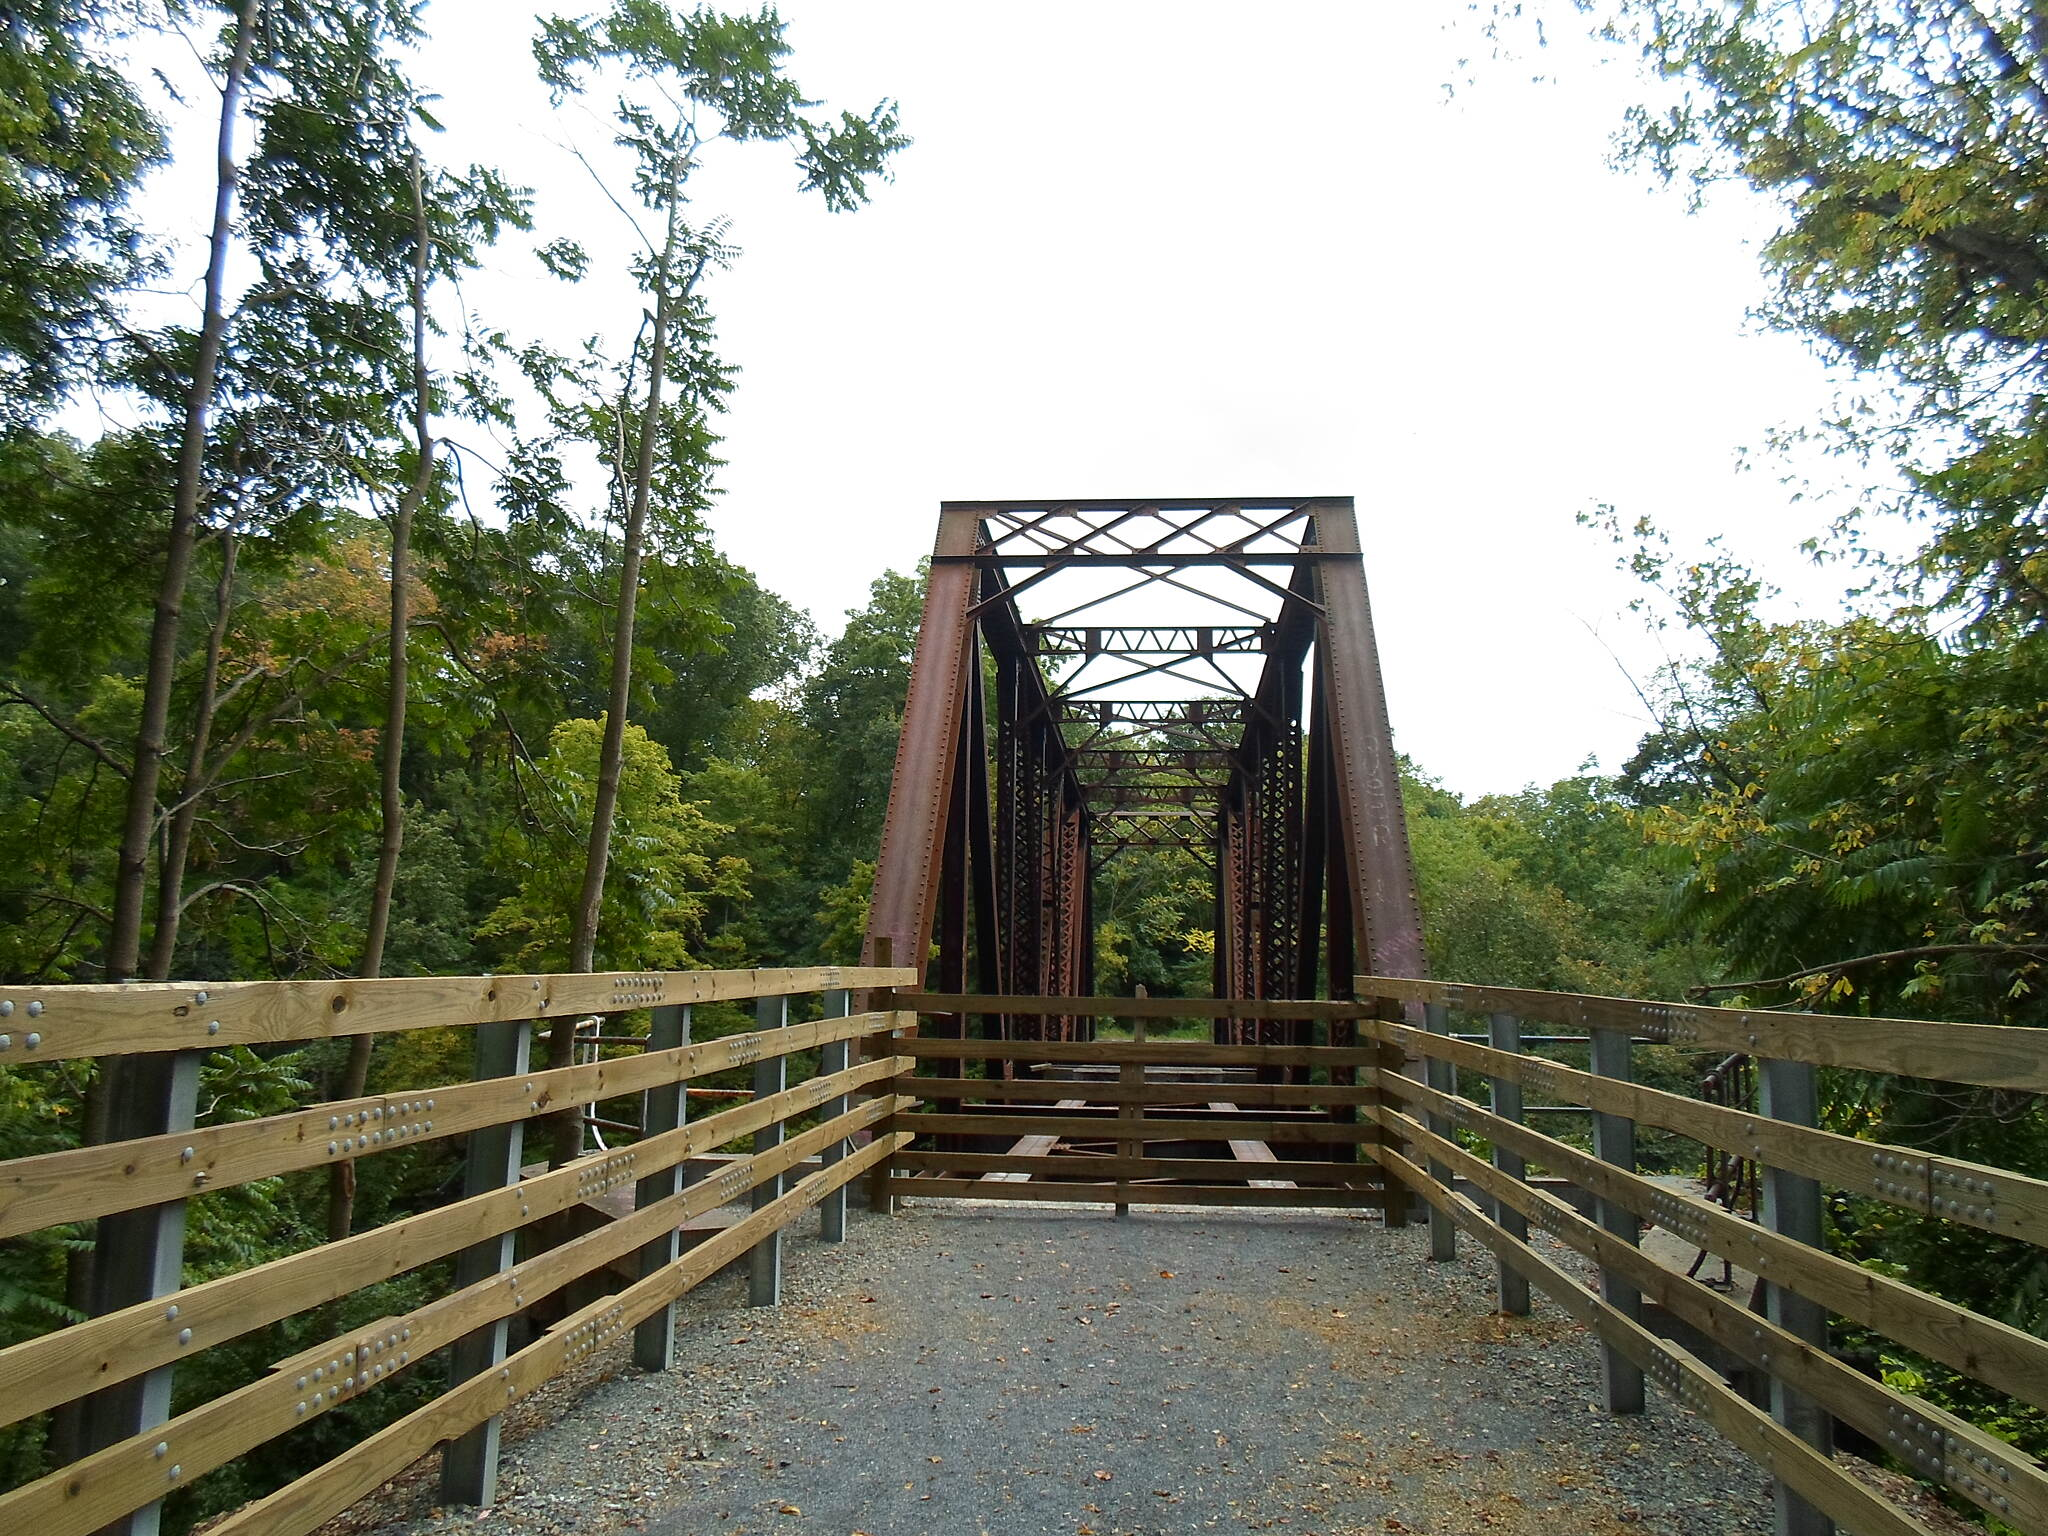 Lebanon Valley Rail-Trail Lebanon Valley Rail Trail The new segment of the trail near Jonestown currently dead-ends at this iron trestle over the Swatara Creek. The trestle, which currently has no decking, is scheduled to be restored and incorporated into the trail in 2018. Taken Sept. 2016.